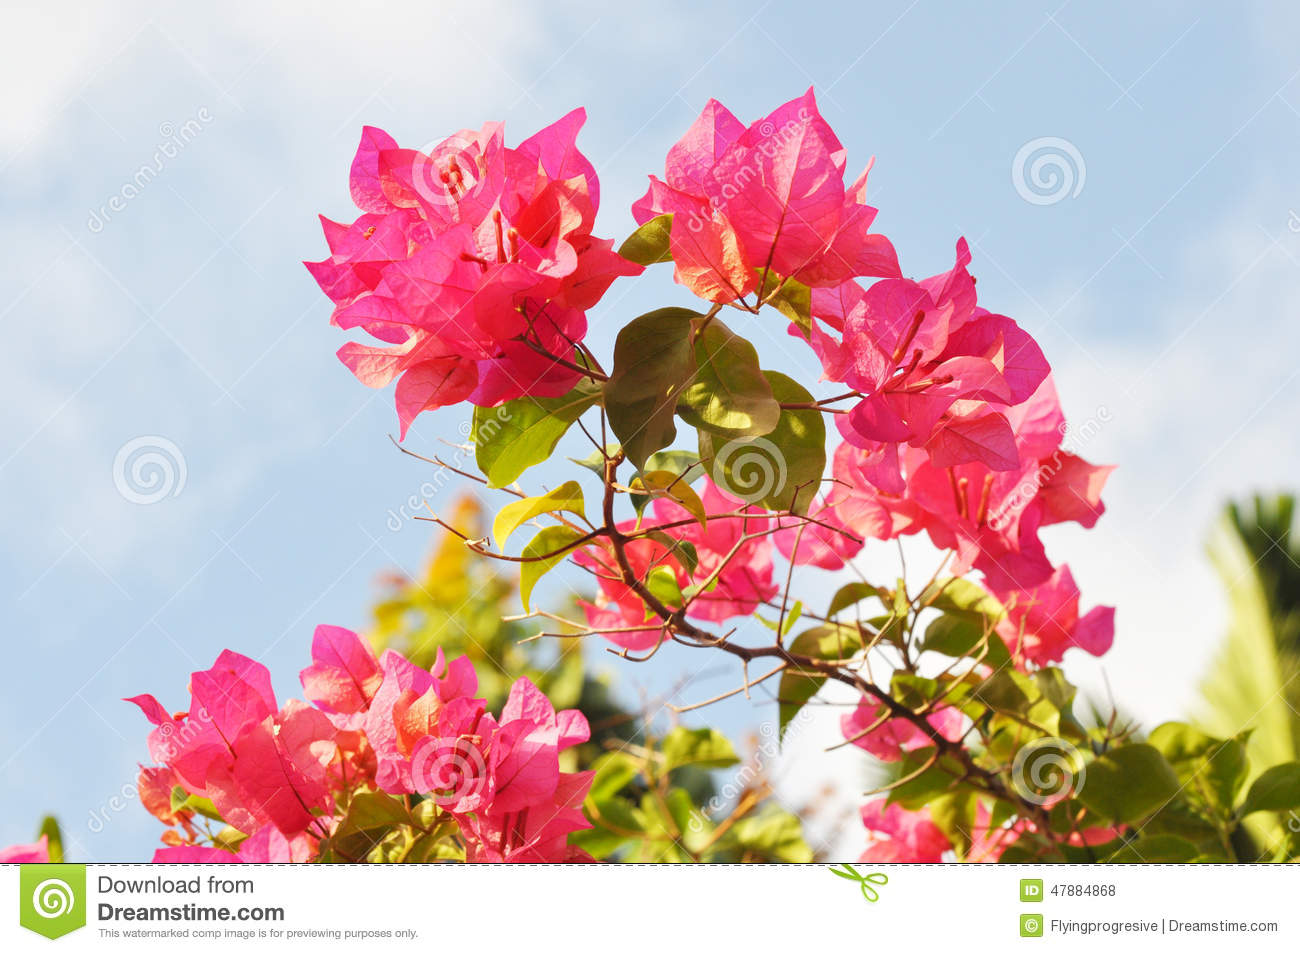 Pink Bougainvillea Flower Stock Photo - Image: 47884868